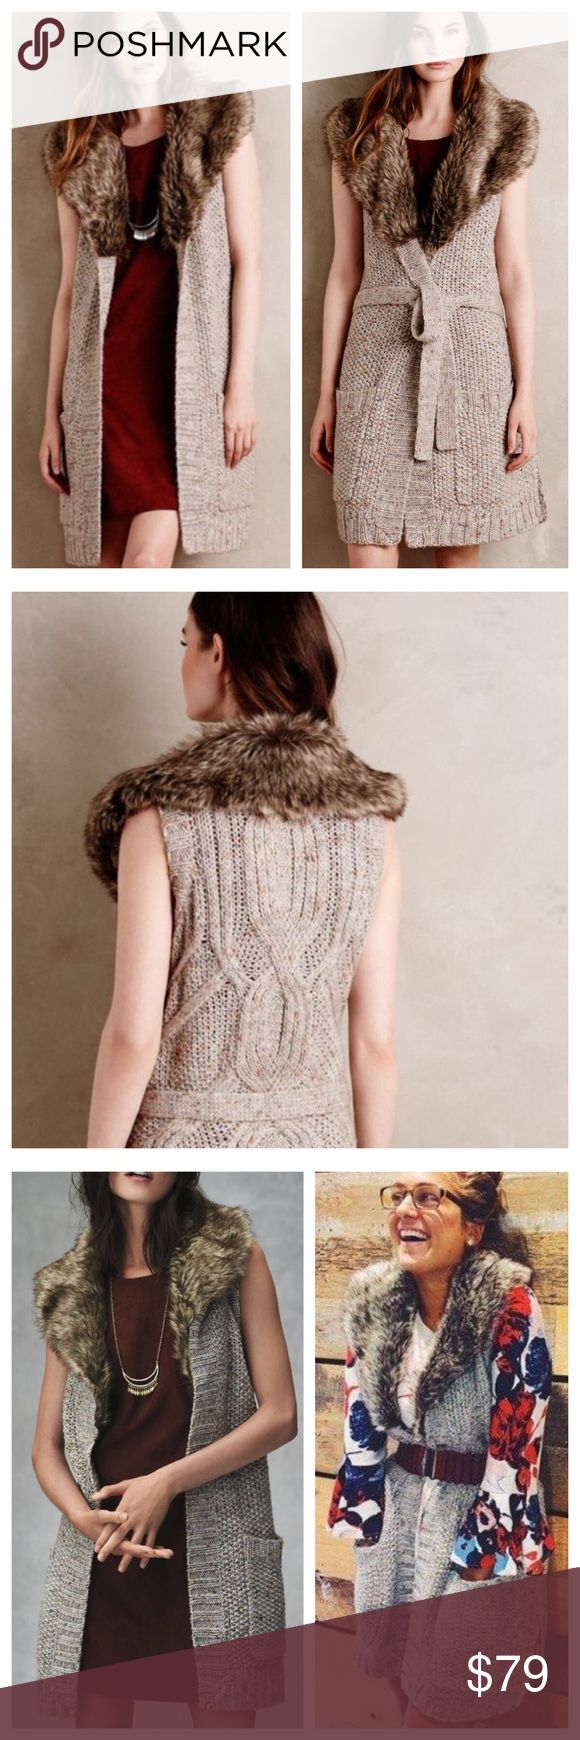 """Anthropologie Angel North Fur Collar Sweater Vest Anthropologie Angel Of The North Faux Fur Collared Sweater Vest EUC  • Sz M • Excellent pre-loved condition • Faux fur collar  • No closure • Tie at waist • 36"""" length  • I have only worn this once, and it has not been laundered, no imperfections. I really like this sweater, and am not motivated to sell this piece, but you are still welcome to make an offer. Thanks Posh family. 🦋 Anthropologie Jackets & Coats Vests"""